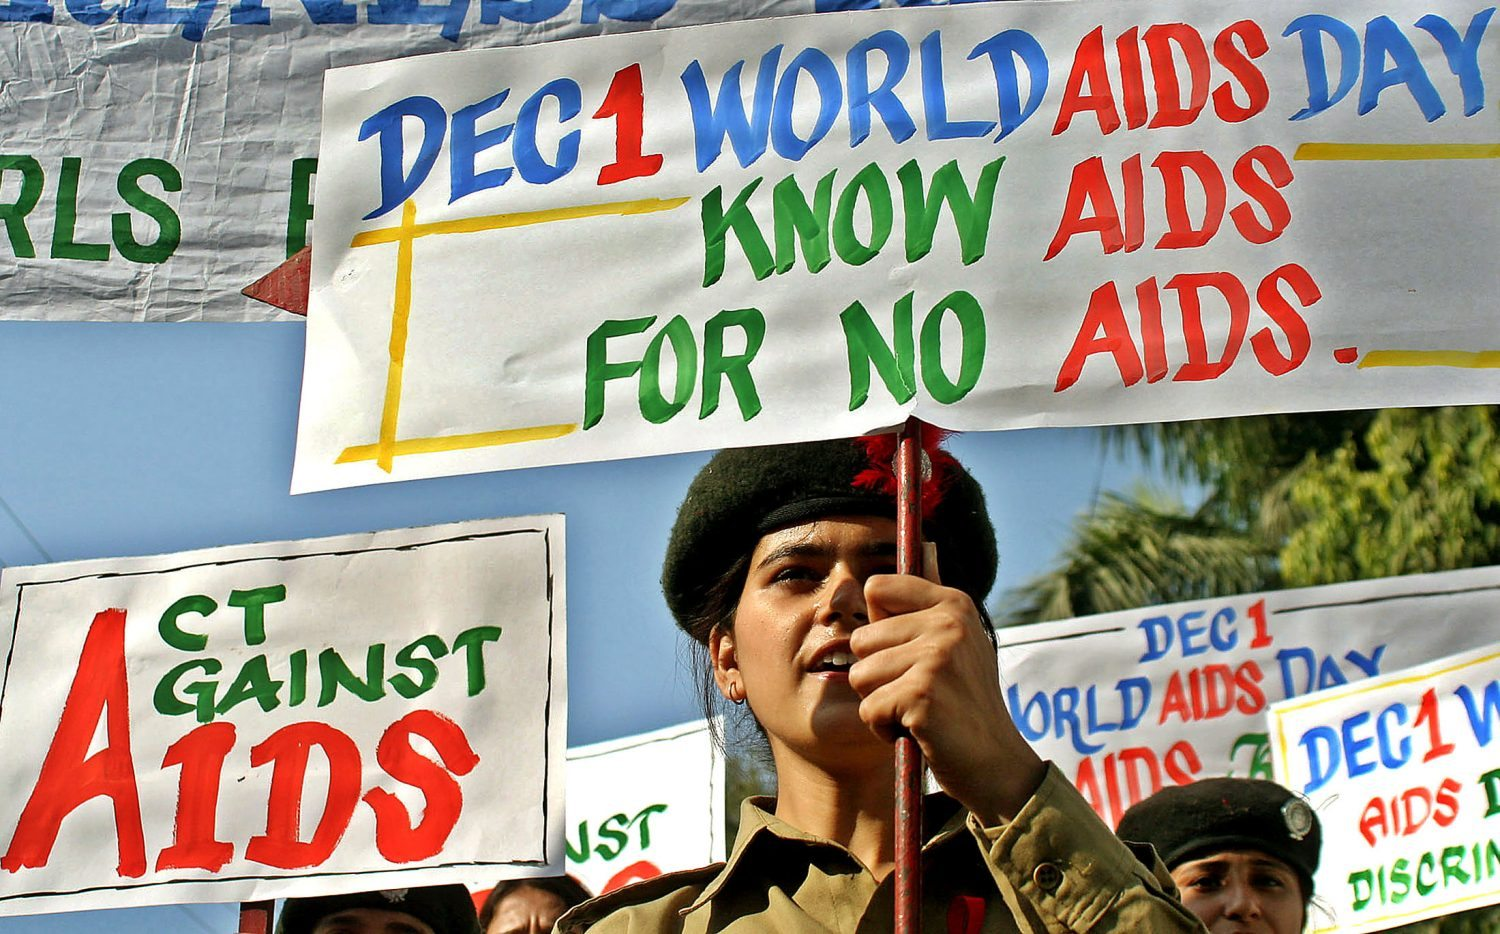 Indian members of National Cadet Corps (NCC) hold placards during an AIDS awareness rally in the northern Indian city of Jammu December 1, 2005. India, with the world's second largest number of HIV/AIDS cases, must shed its inhibitions and start talking openly about safe sex to protect itself against the epidemic, Prime Minister Manmohan Singh said on Thursday. REUTERS/Amit Gupta - RTR19SKU